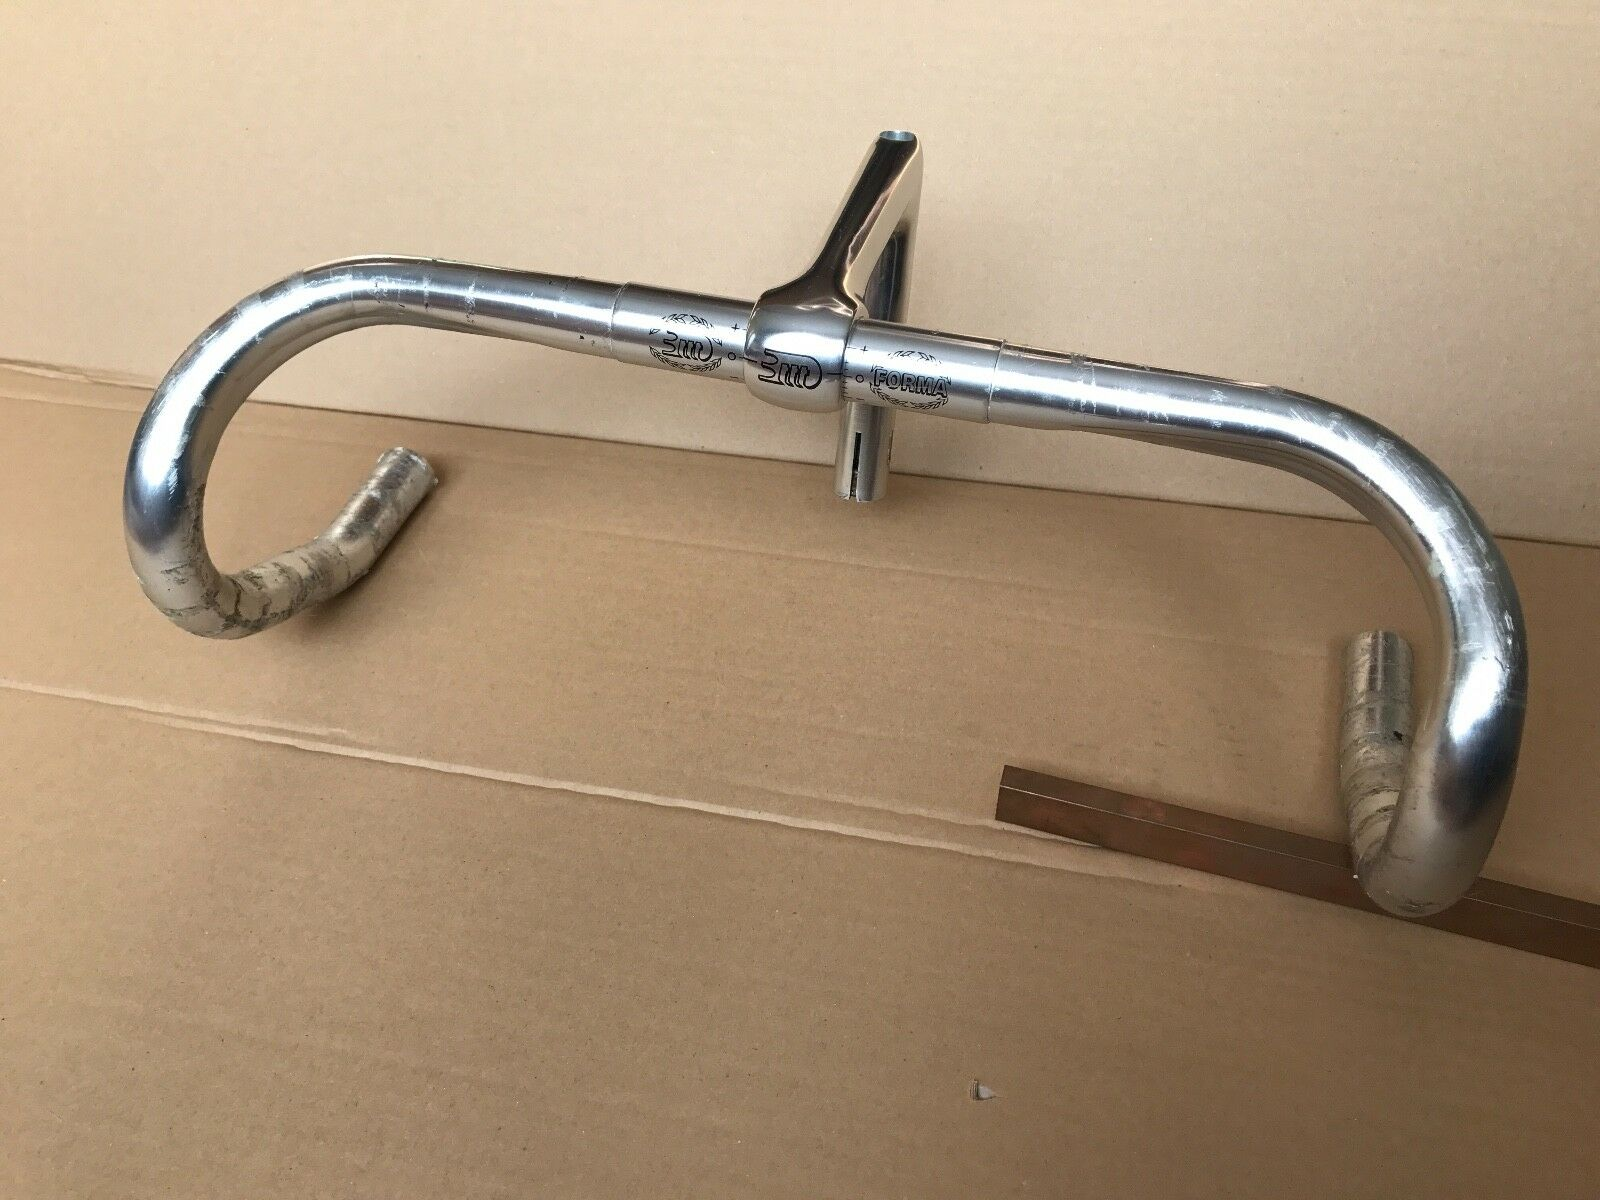 NOS 3TTT Forma 44cm handlebars with 110mm quill stem, for campy ergoshifters